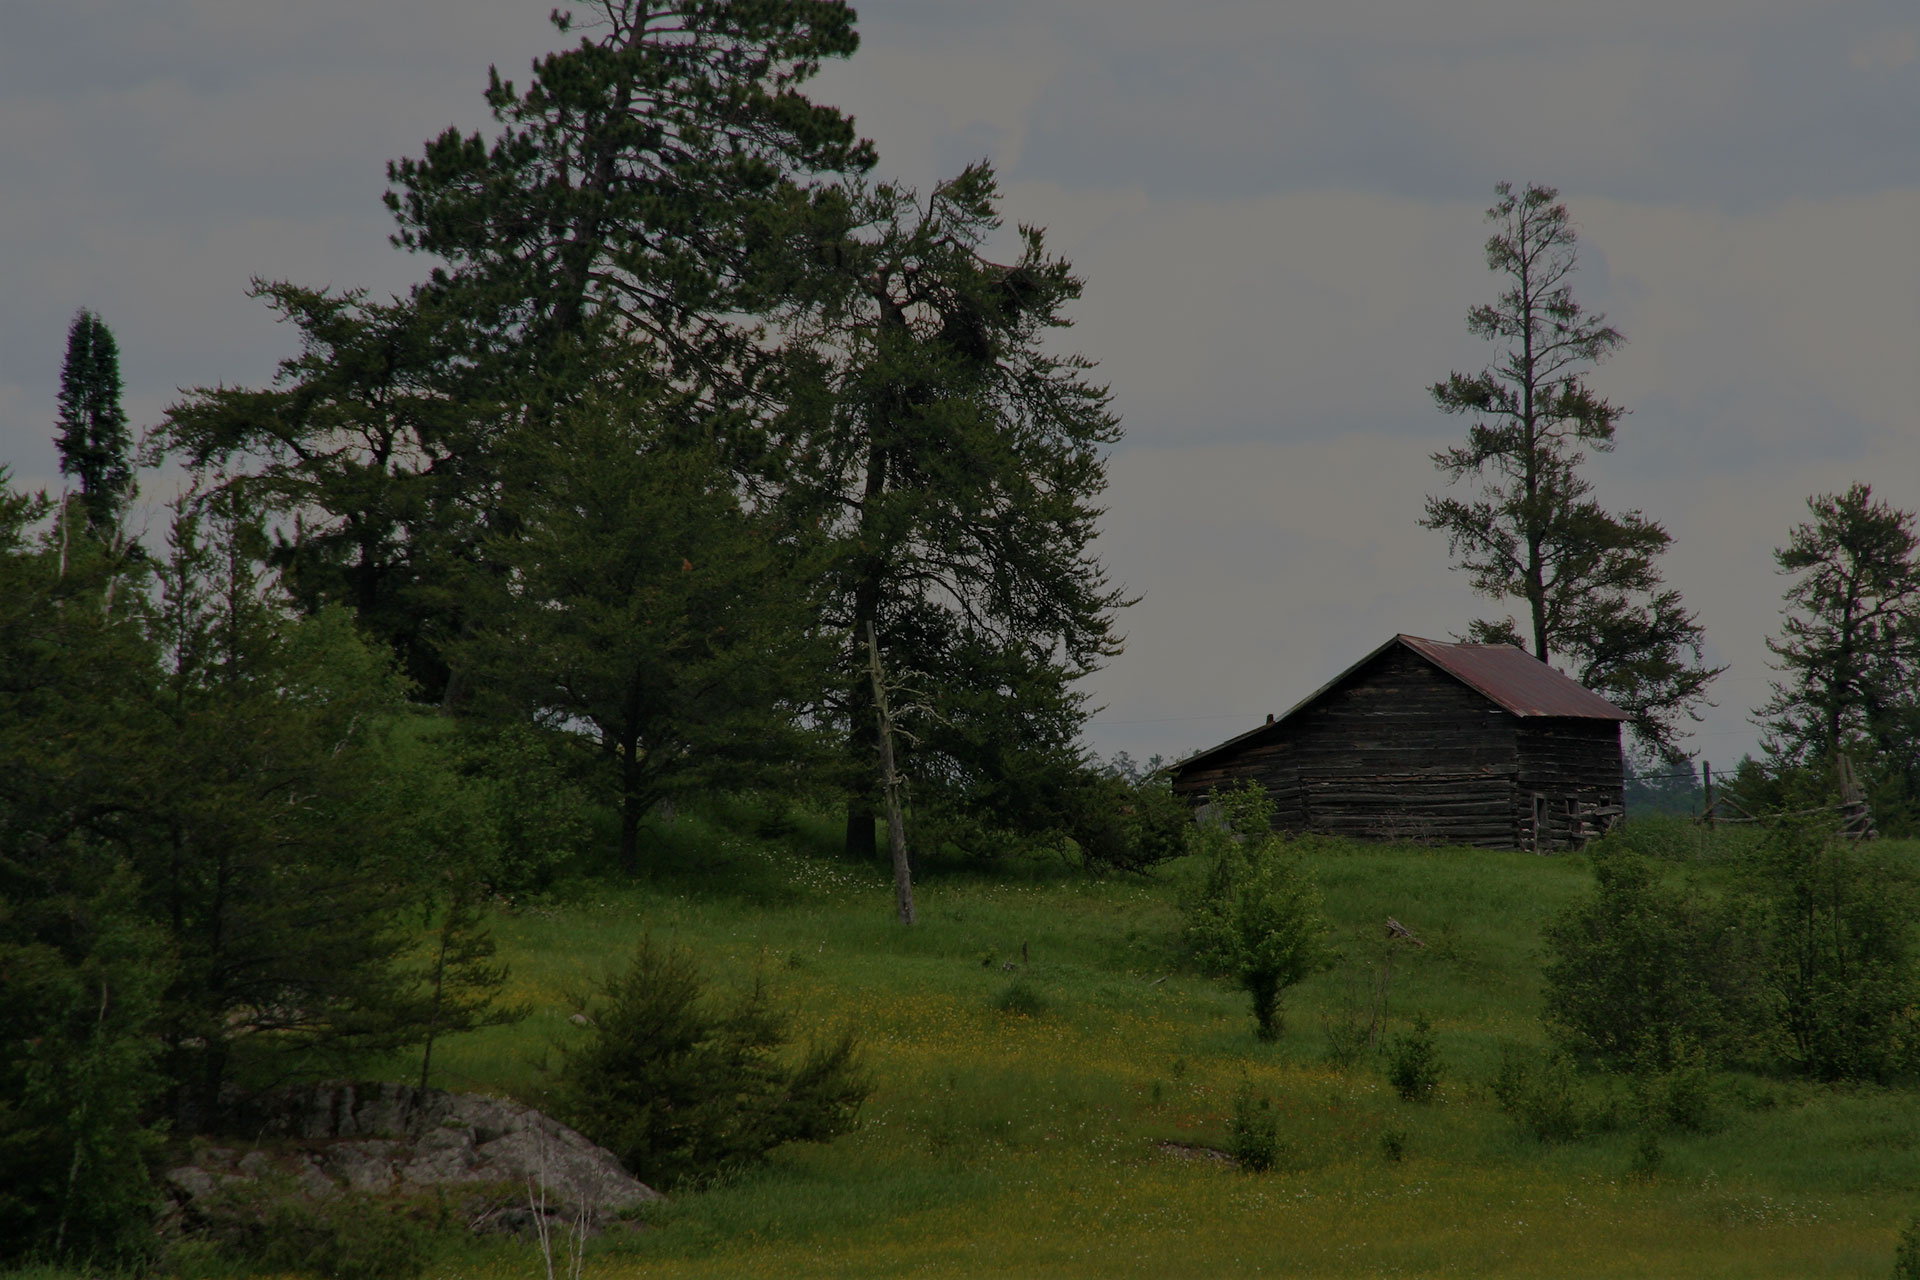 Log Cabin in the fields